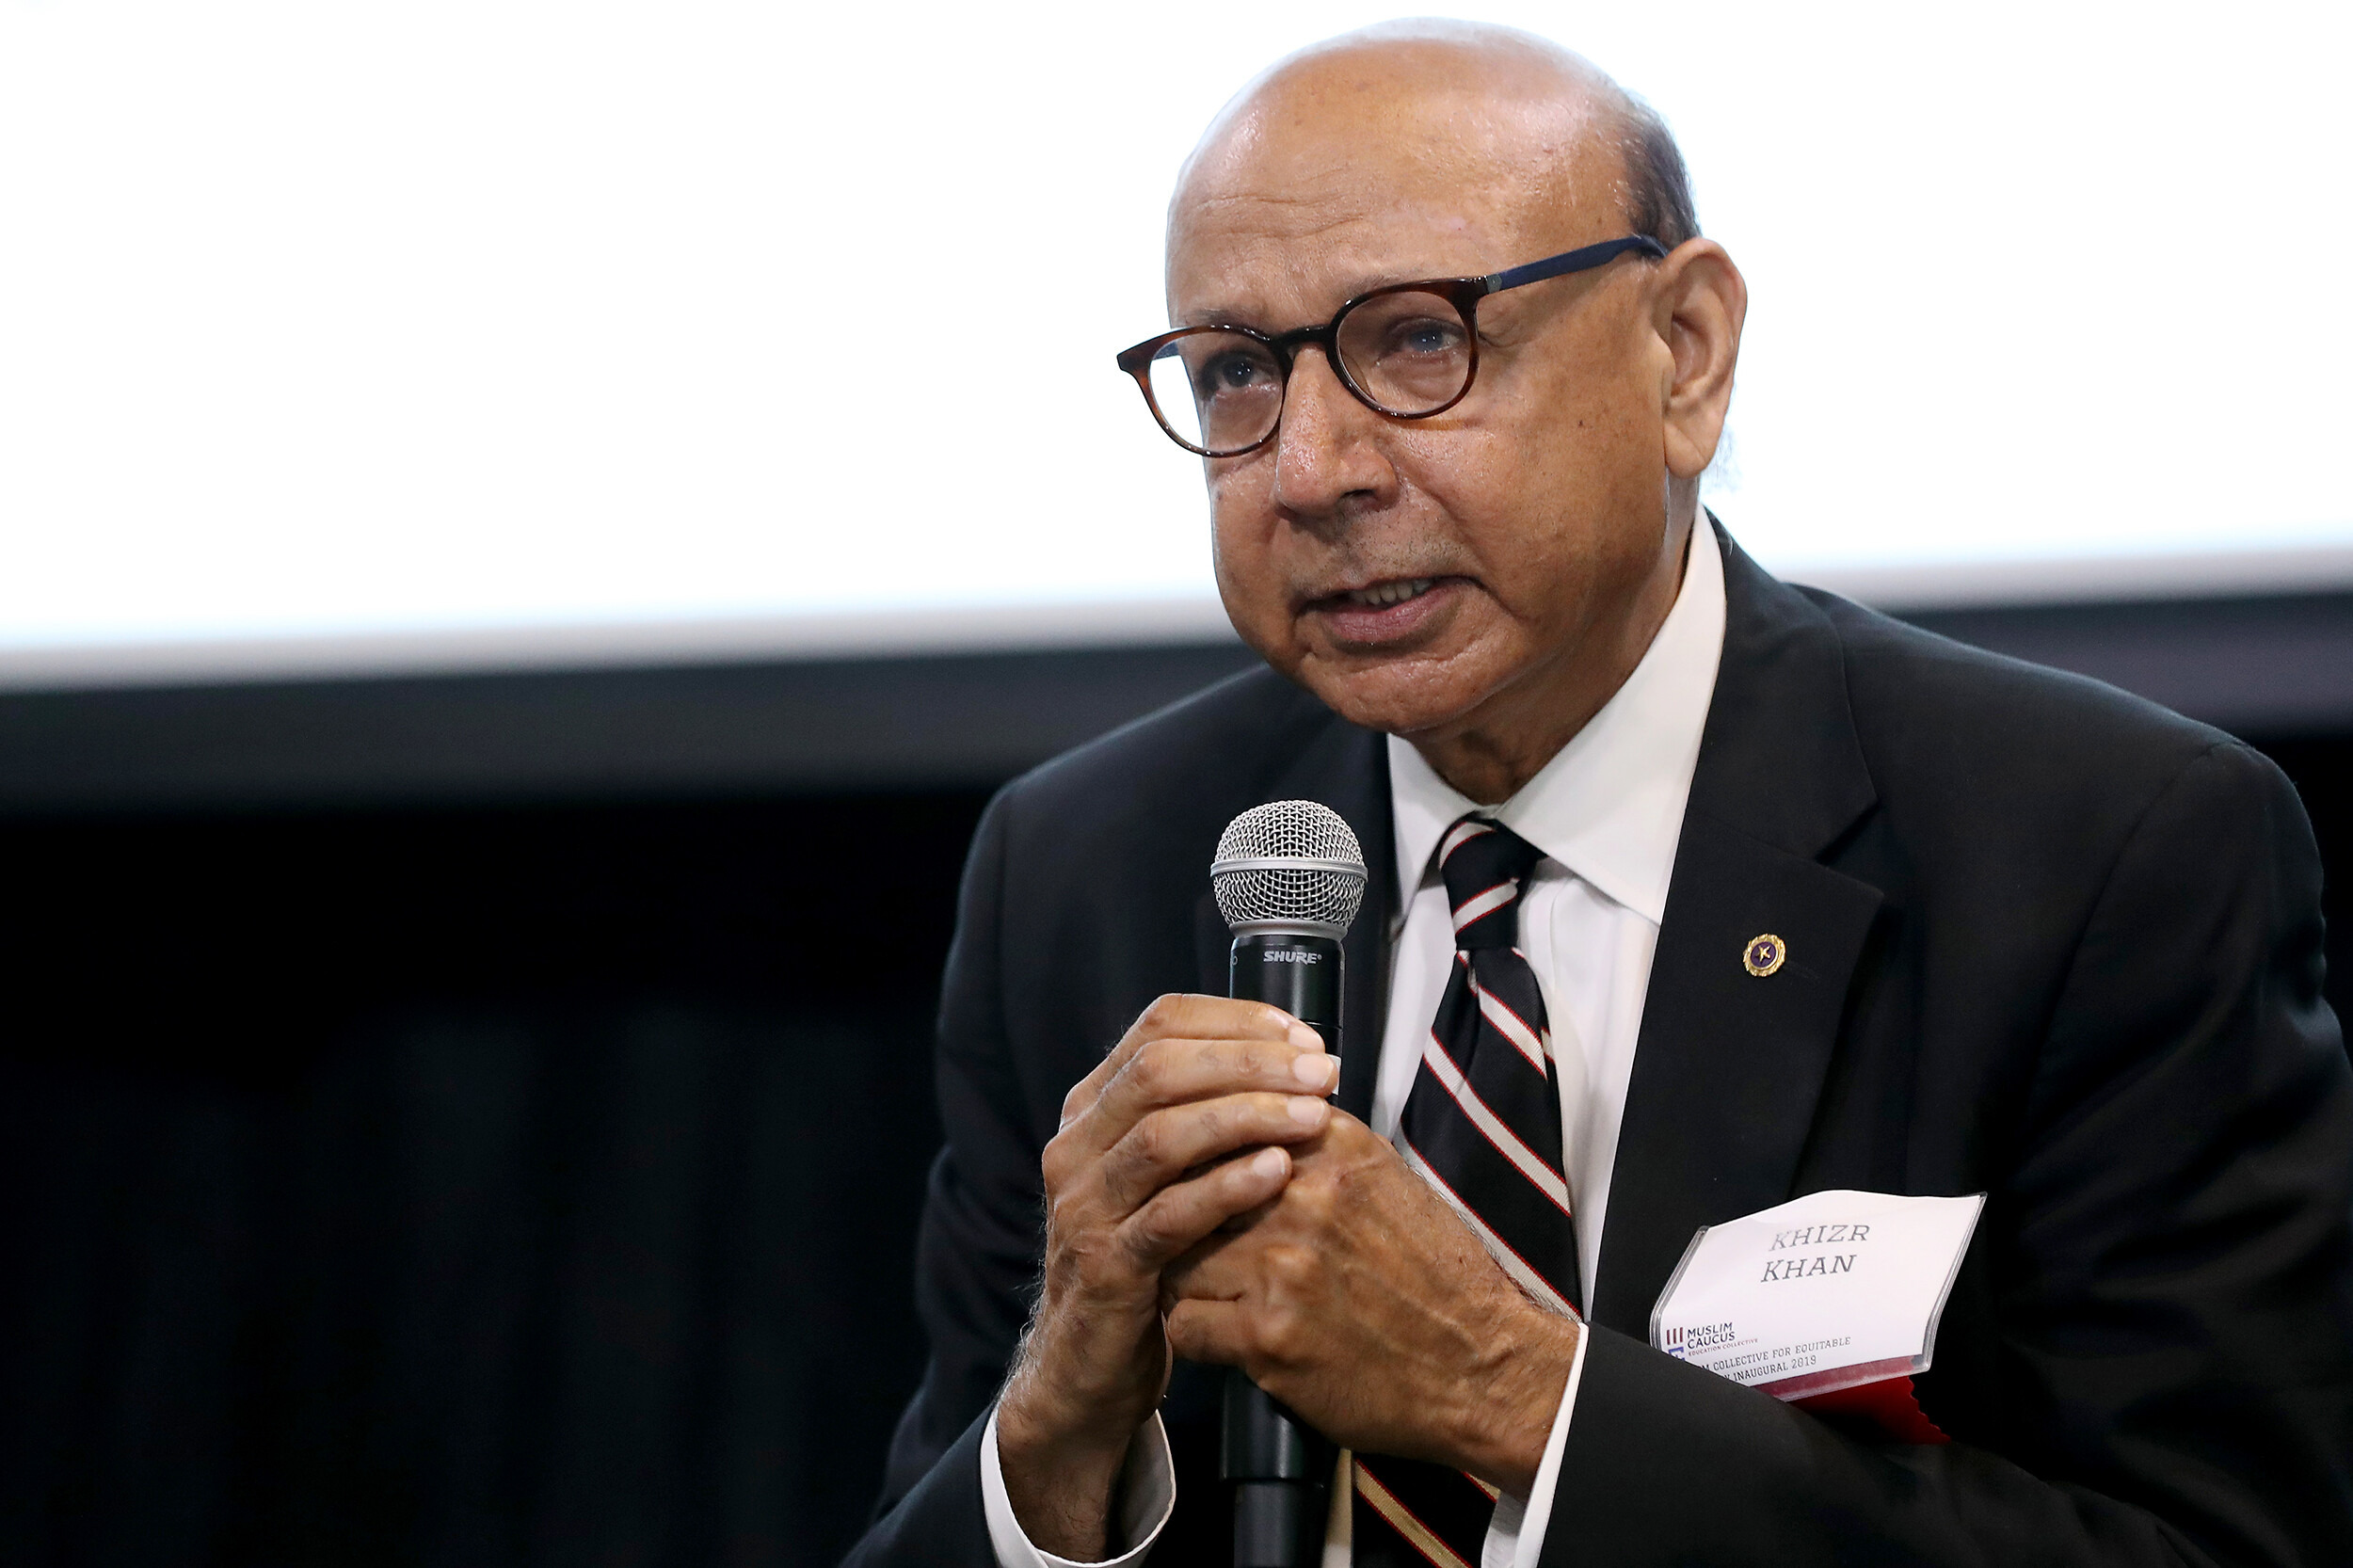 Biden nominates Khizr Khan, a Gold Star father and Trump critic, to religious freedom post